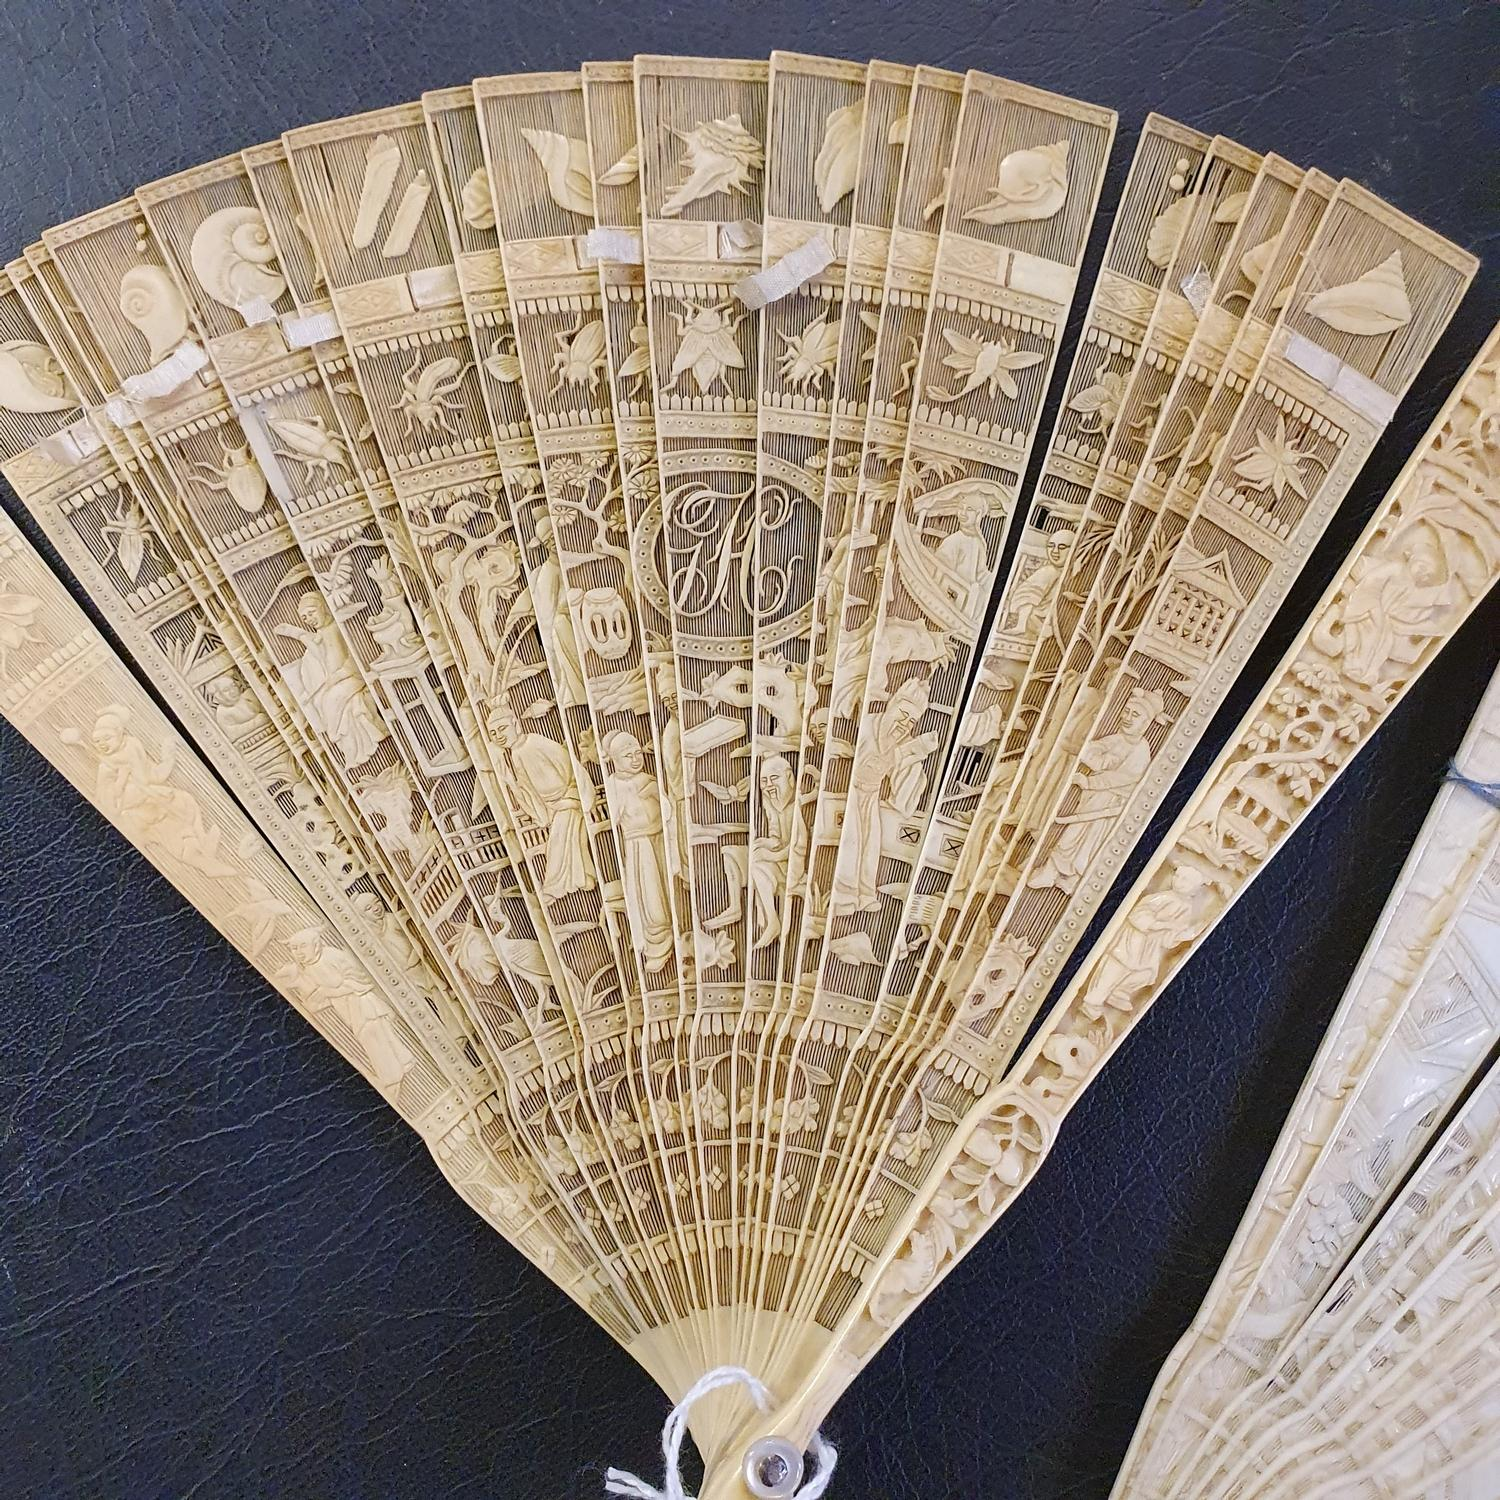 A Chinese ivory brisee fan, two others, and a similar fan with silk embroidered decoration, in a